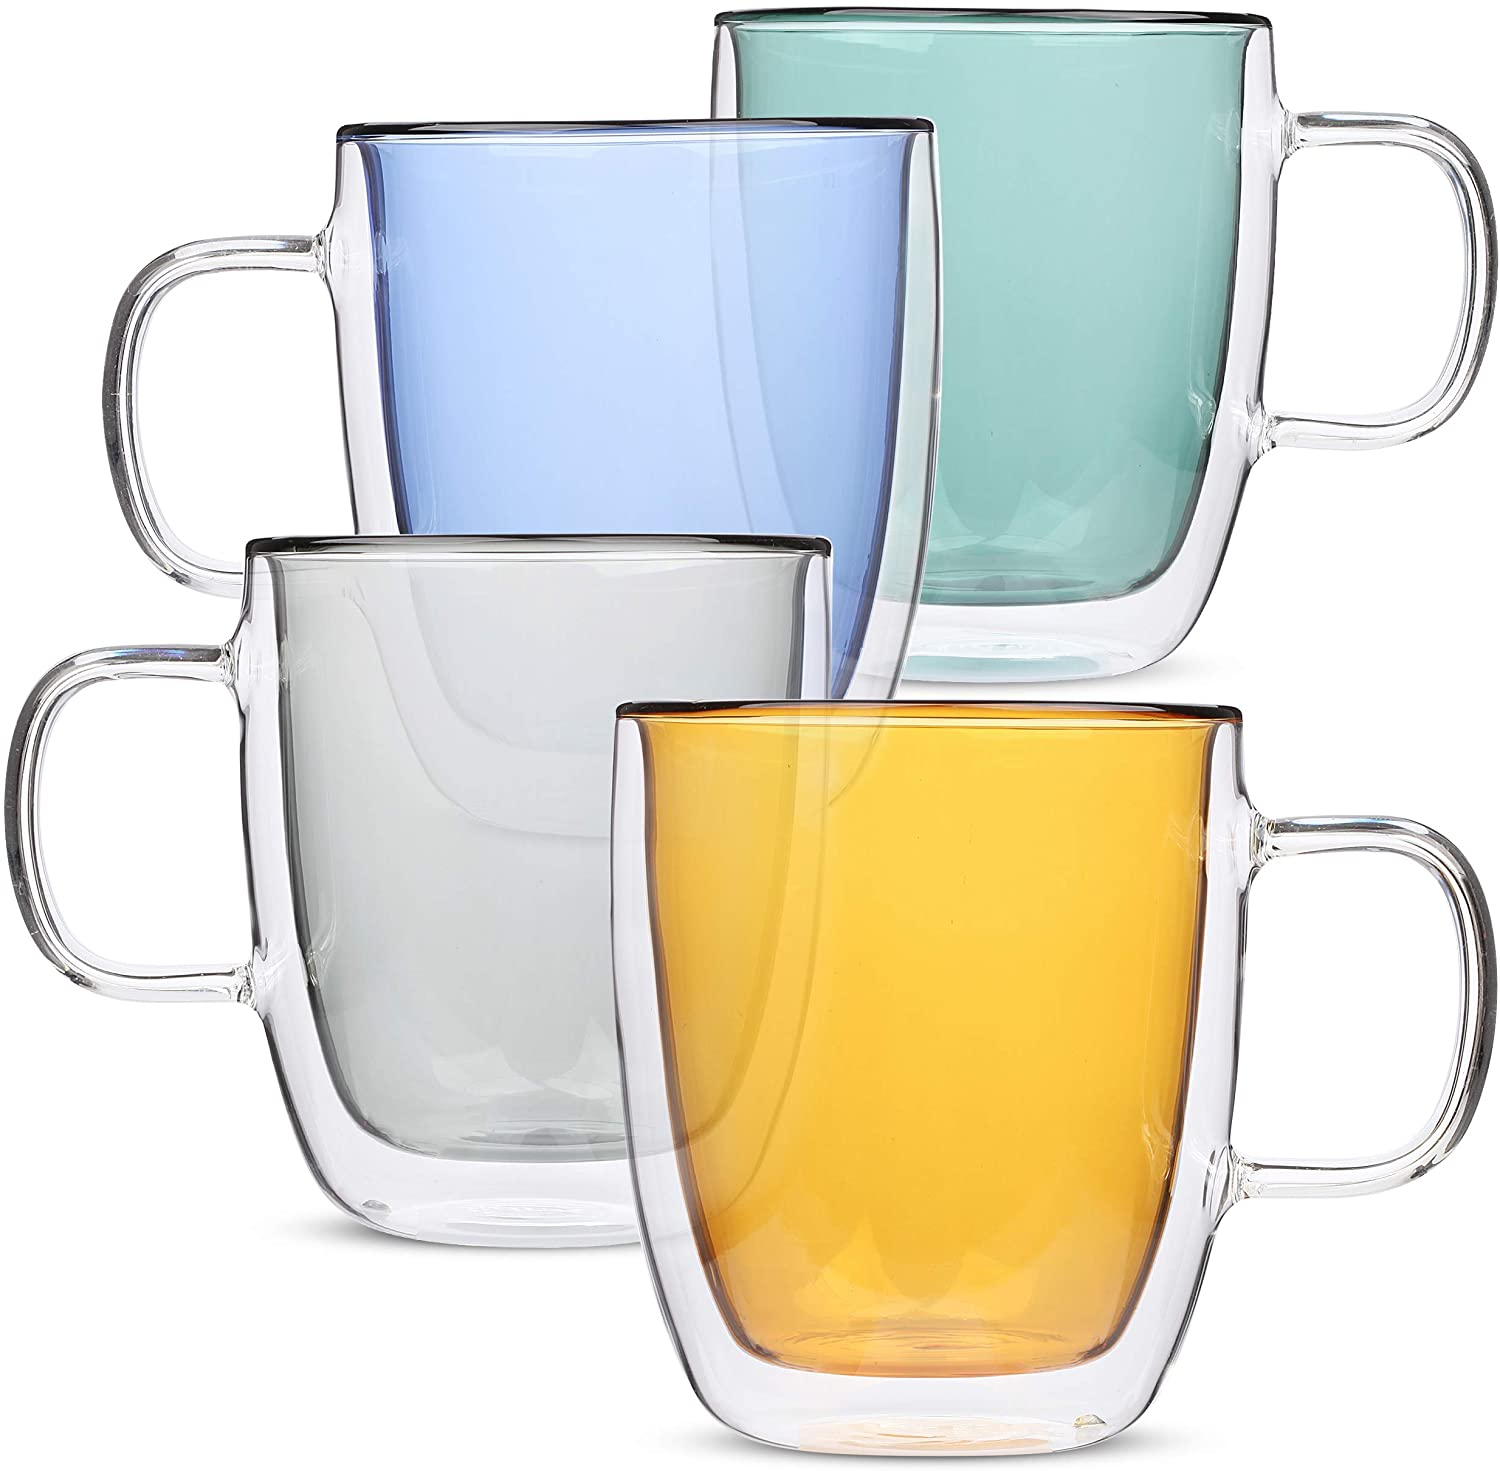 2021 European fashion color double wall glass coffee cup with handle on coffee shop